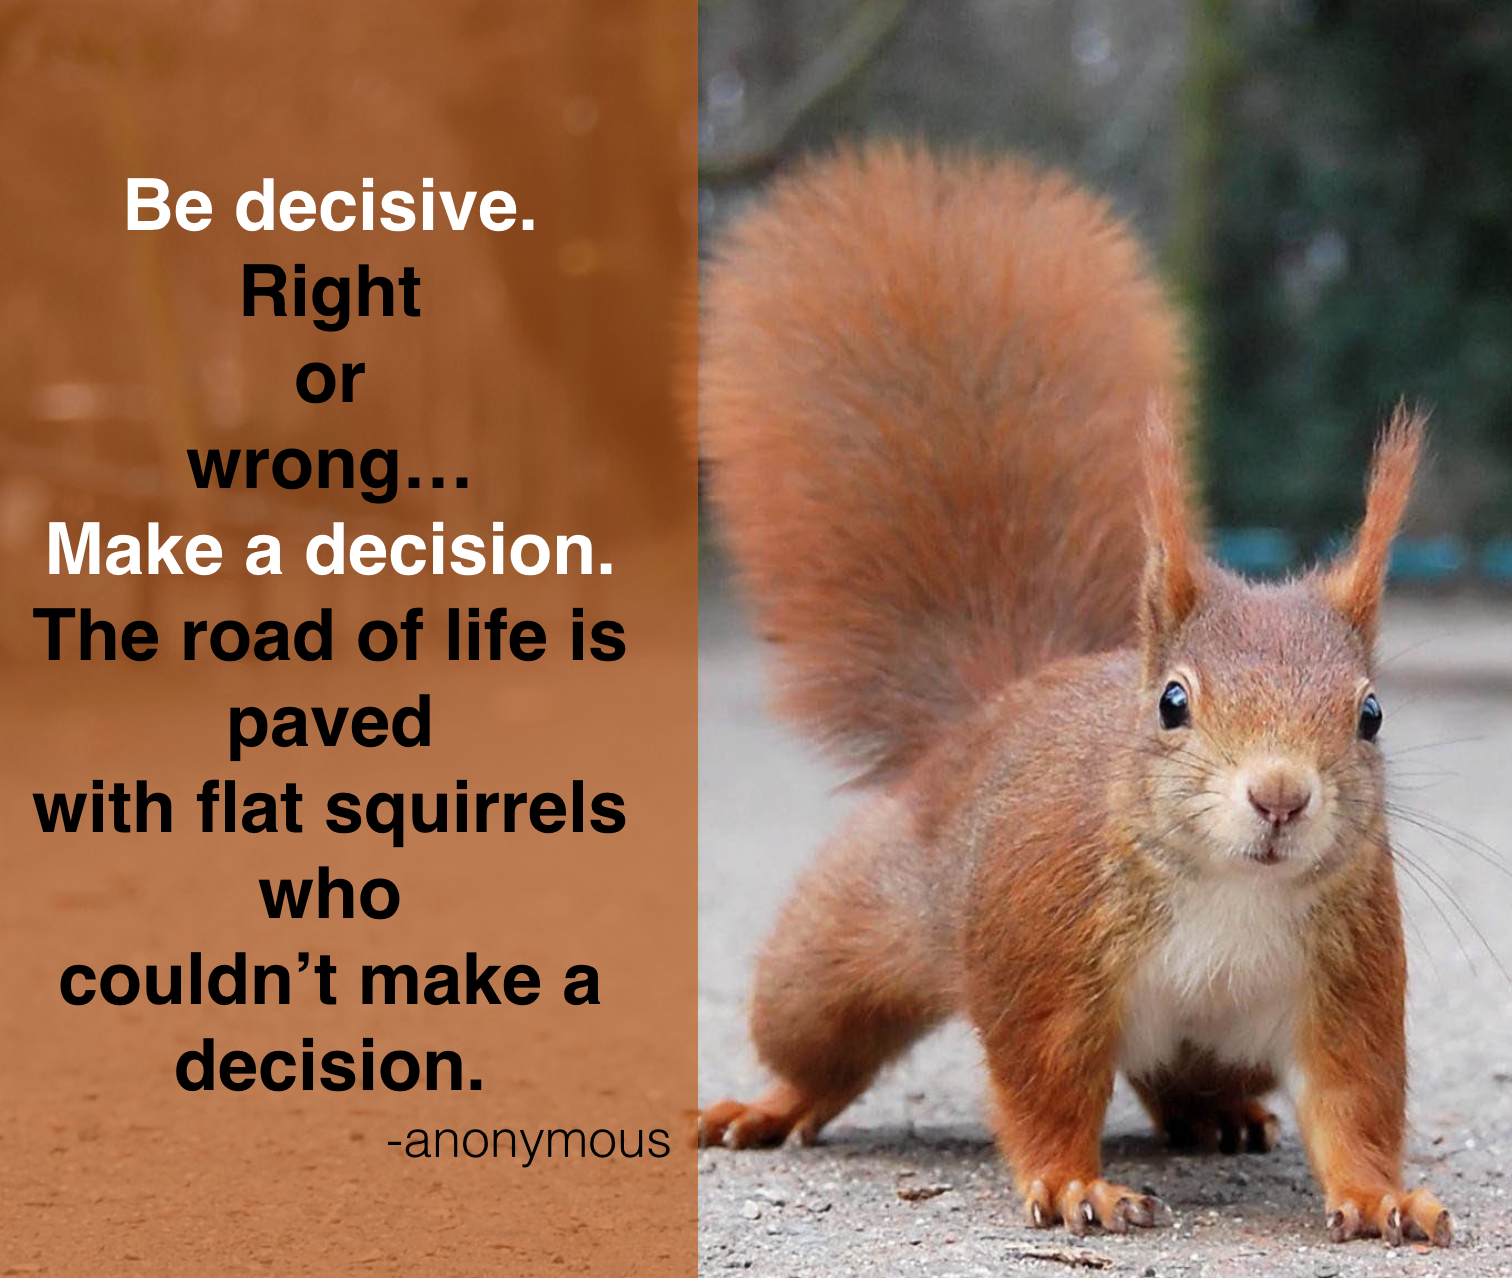 Don't be a flat squirrel on the road of life! Make a